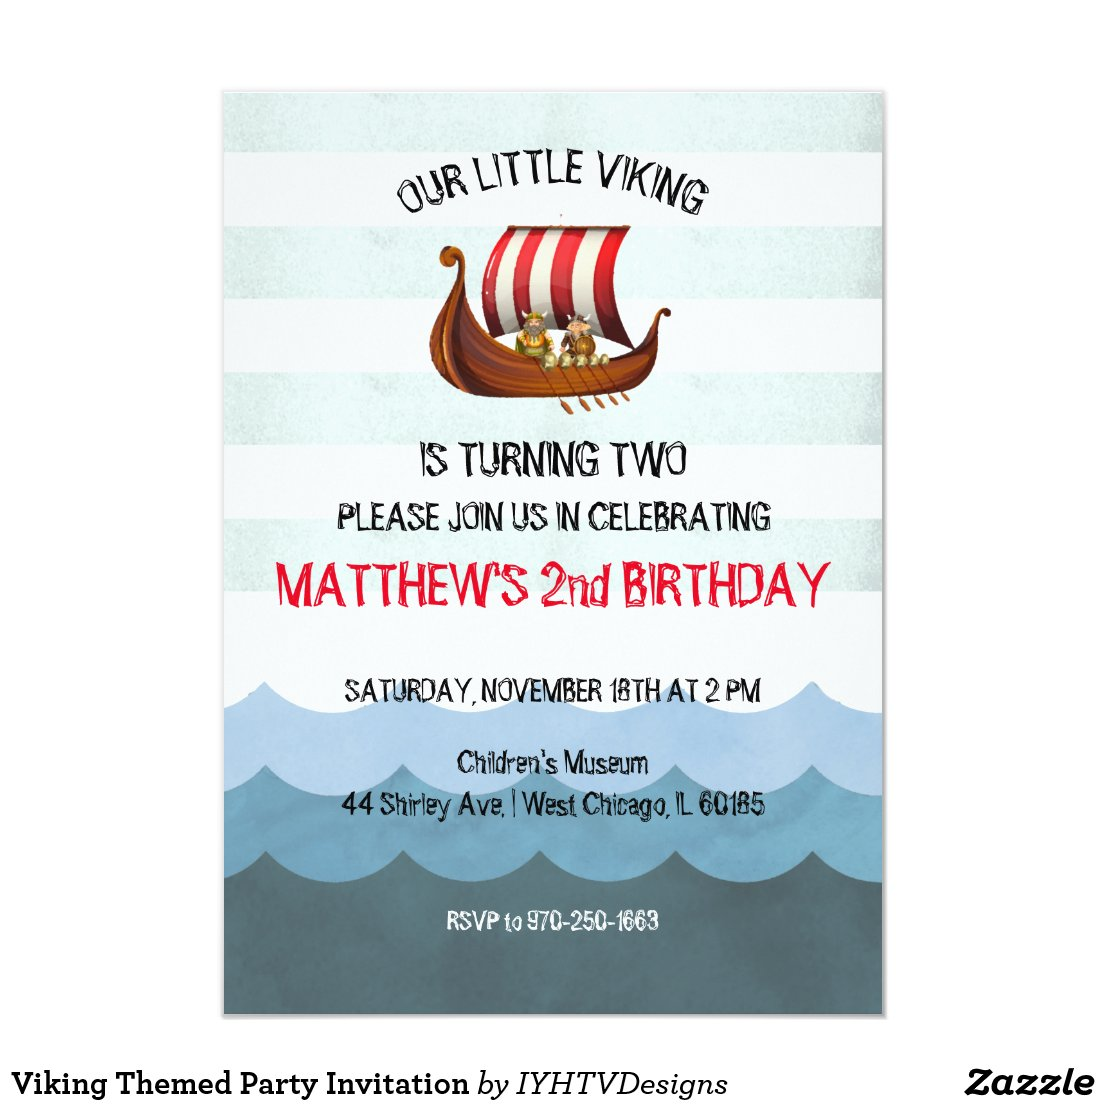 Viking Themed Party Invitation